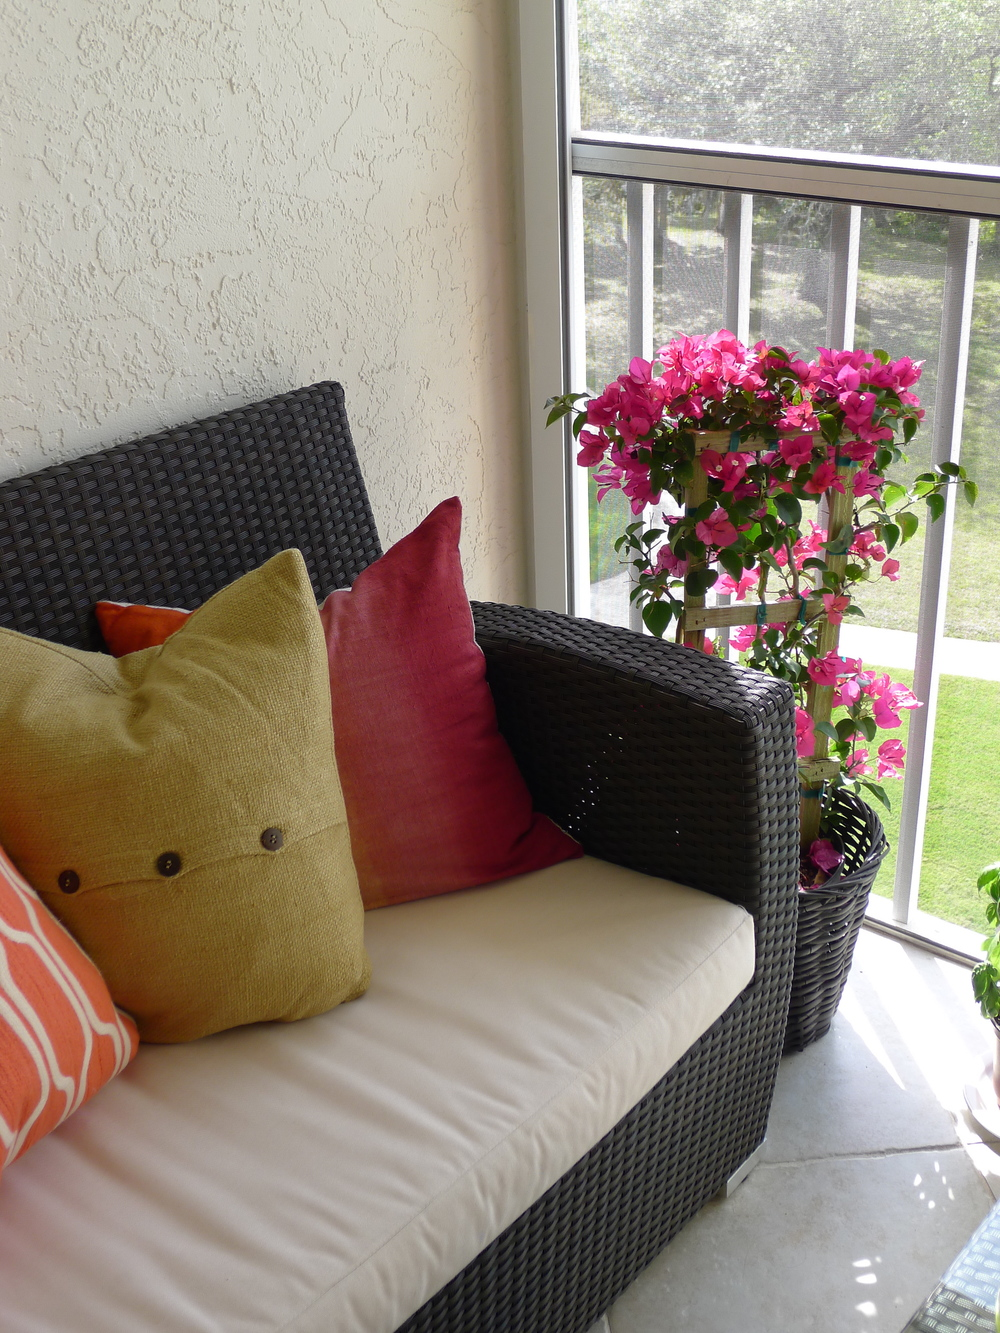 Lanai 2014 with Pillow pops of colour and beautiful bougainvillea plant in the corner